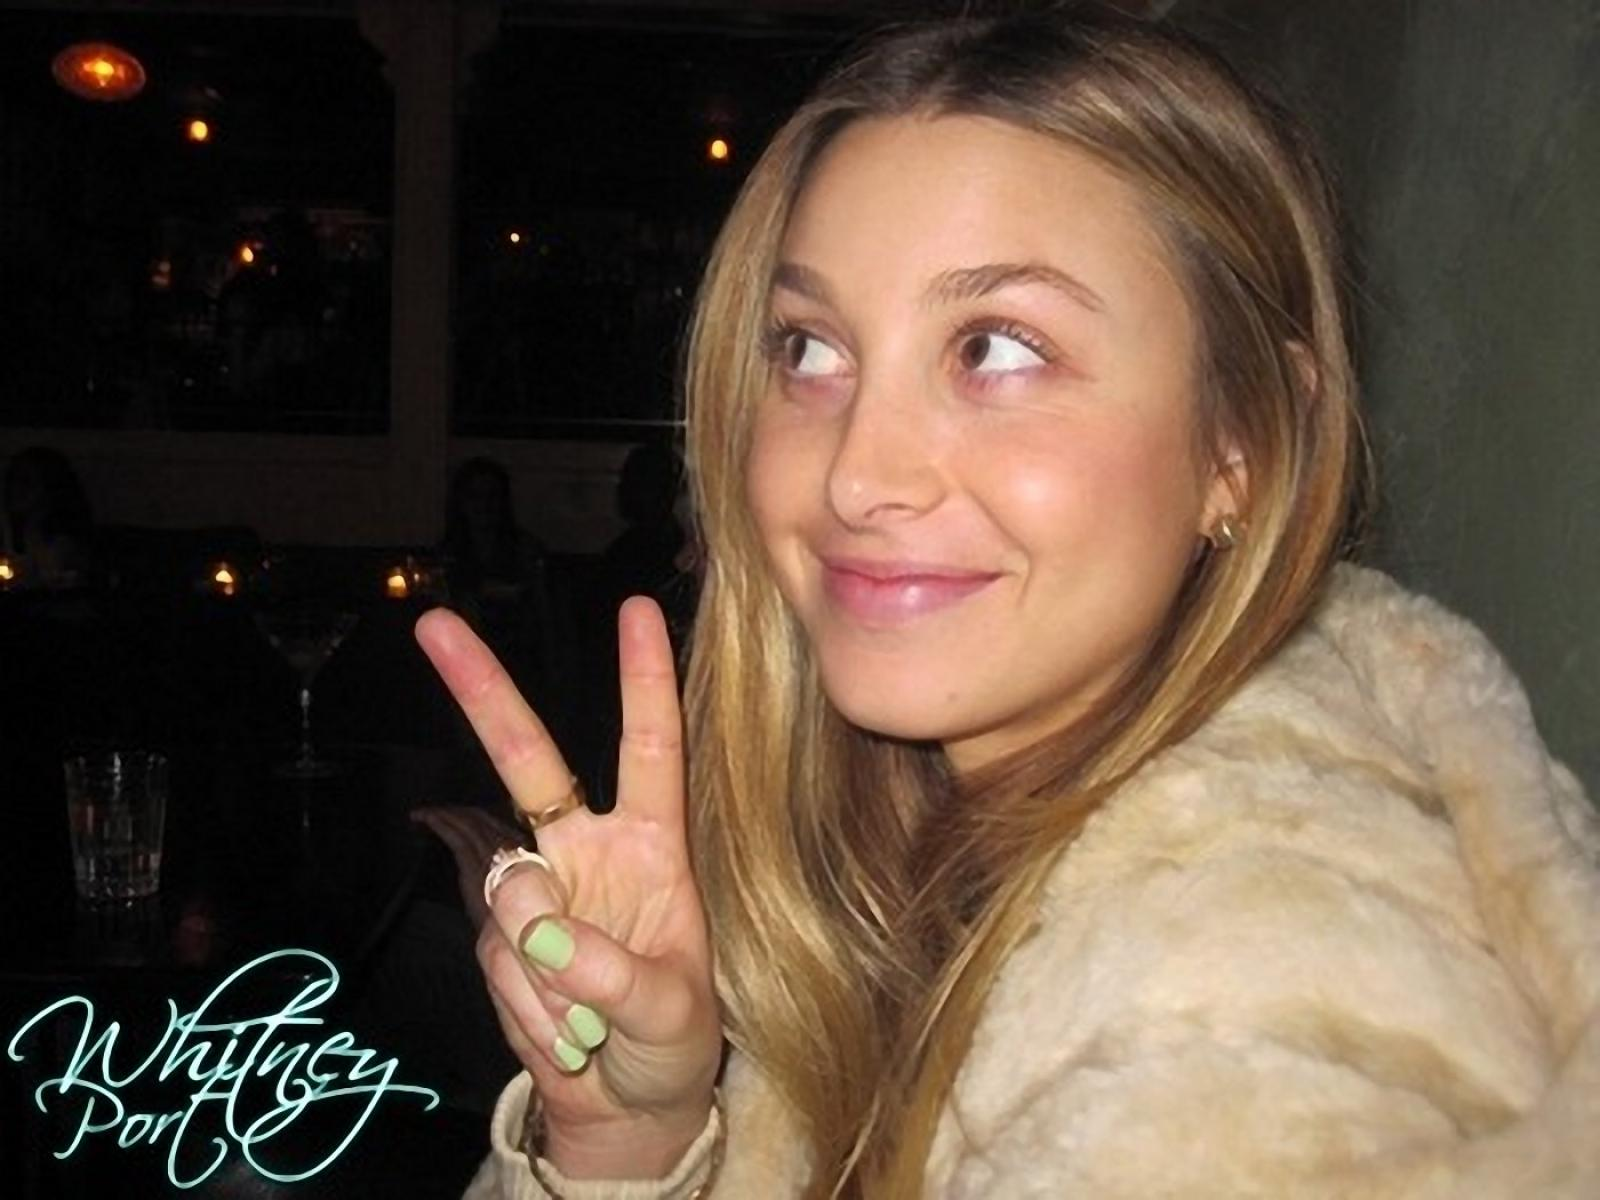 1600x1200 - Whitney Port Wallpapers 12